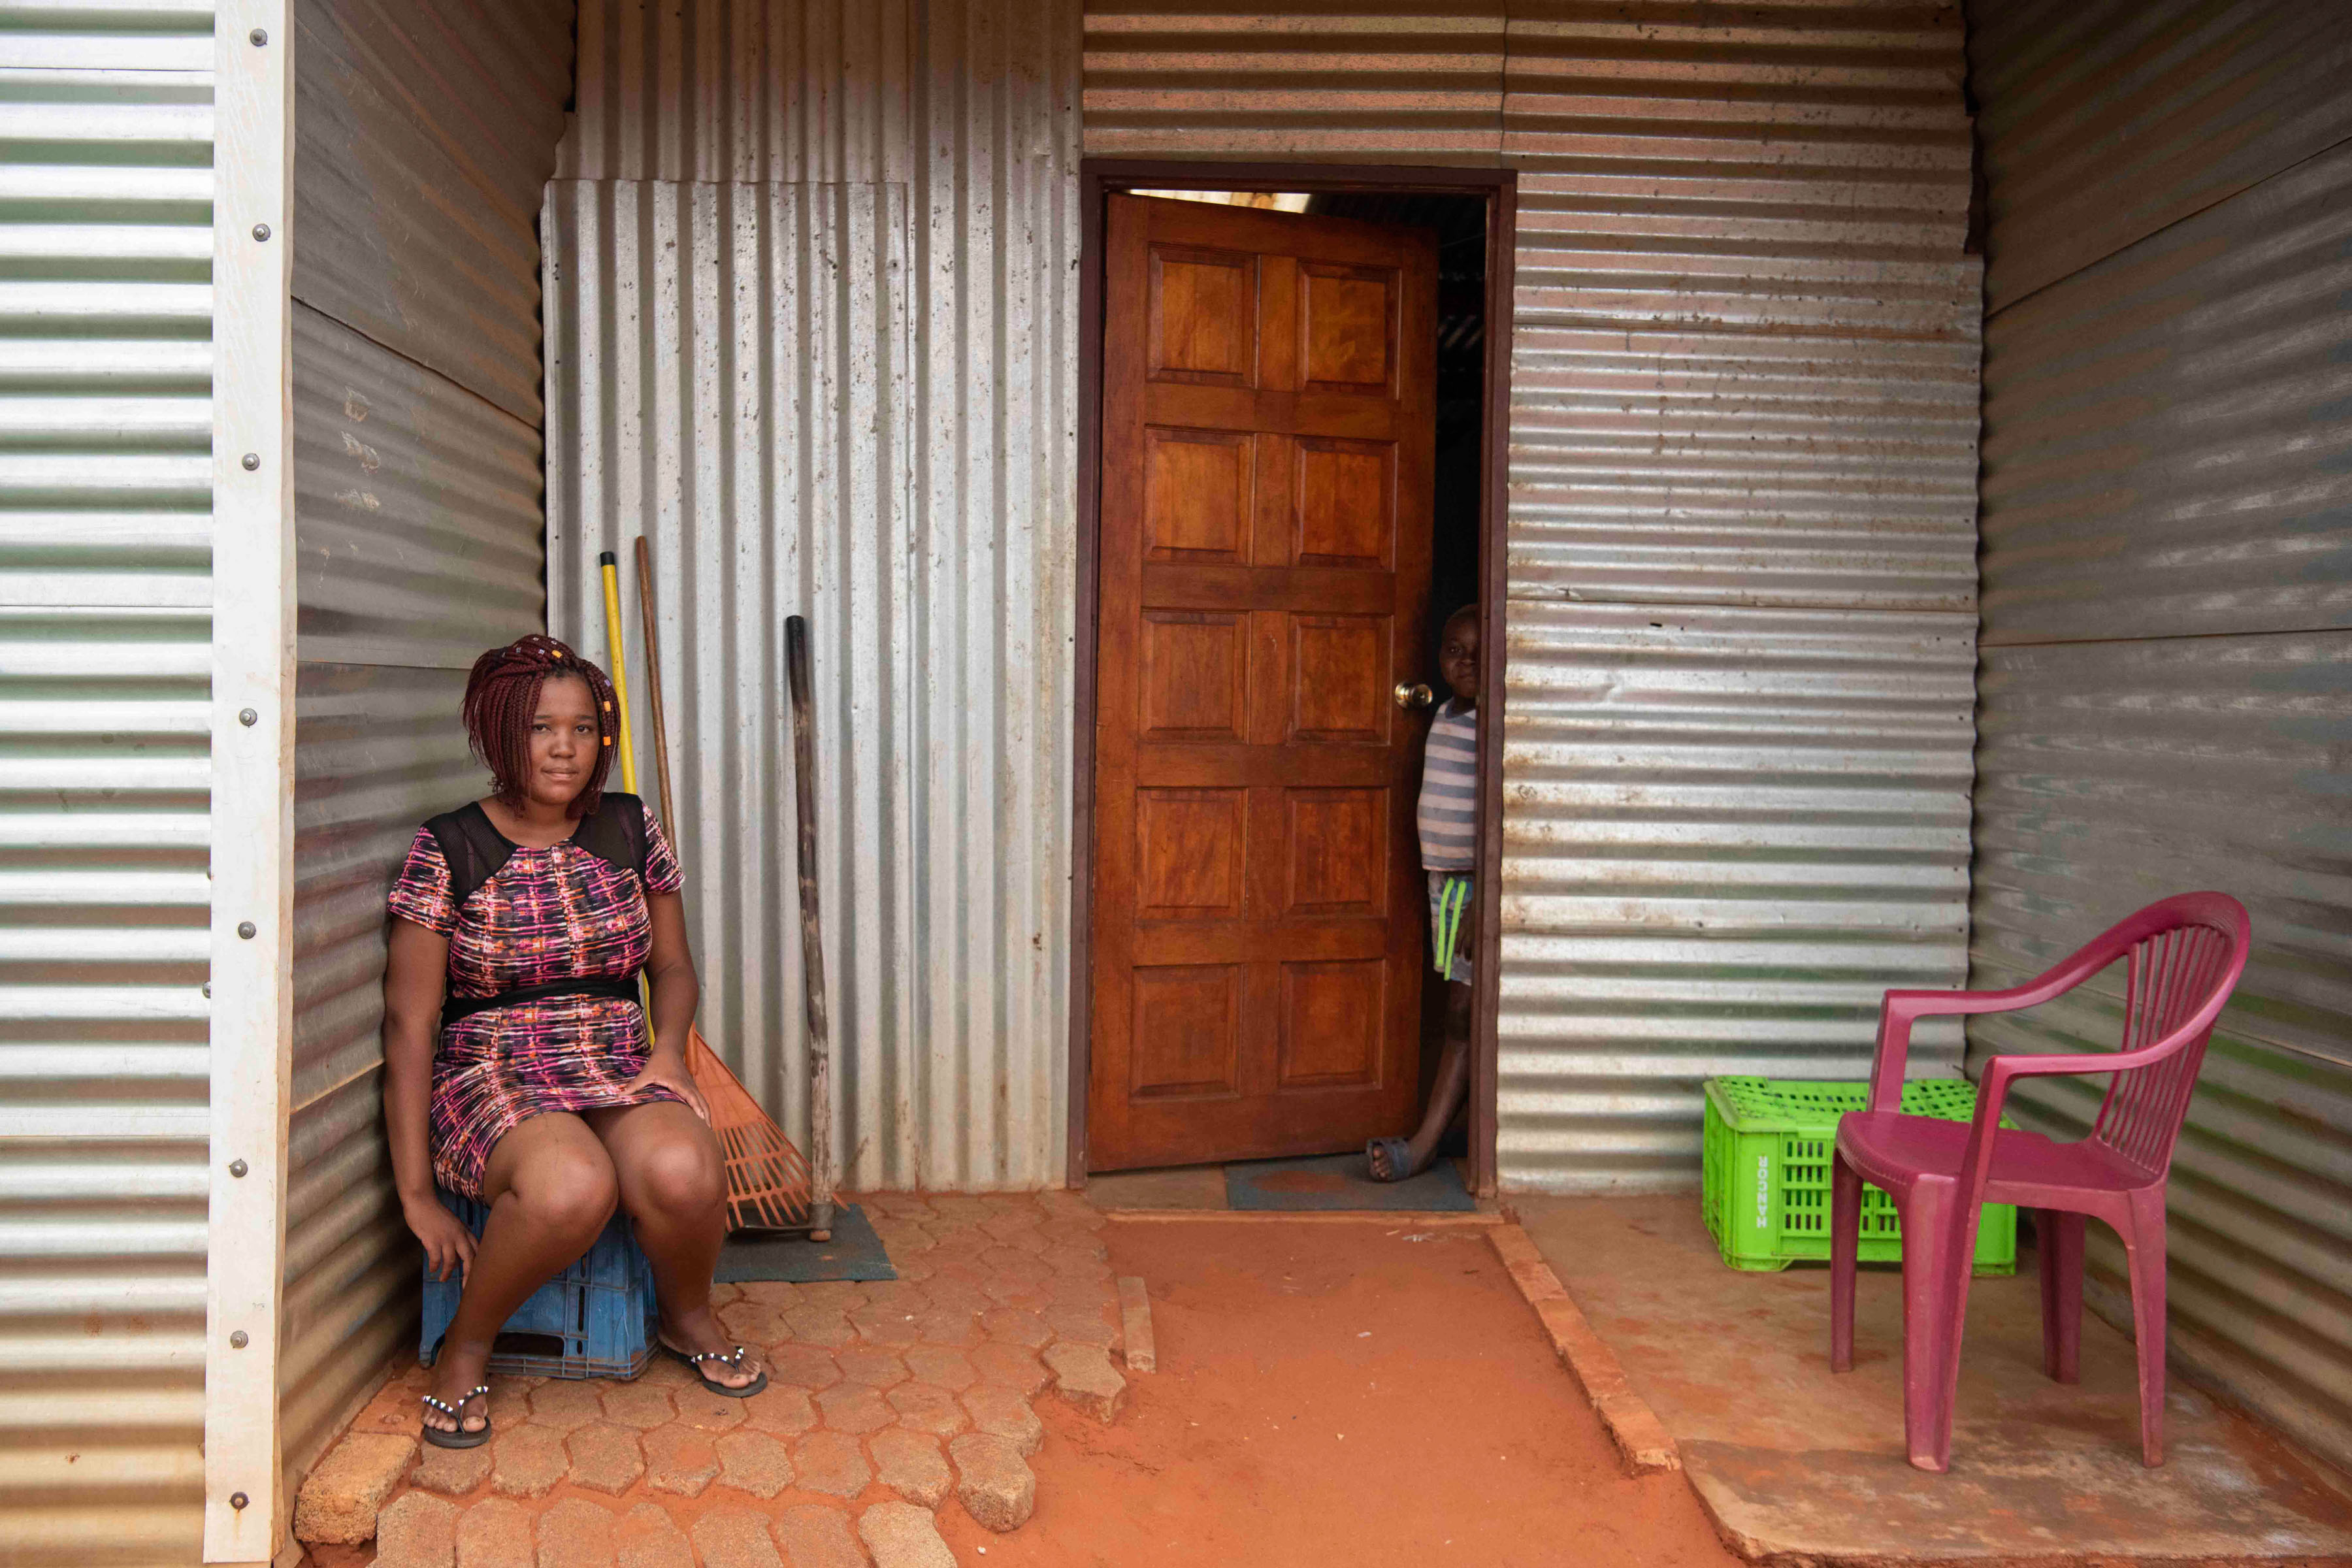 8 January 2020: Regina Dikuwa aspires to be a doctor, but her family cannot afford the tuition fees. She plans to attend the ANC's 108th anniversary celebrations in Kimberley.